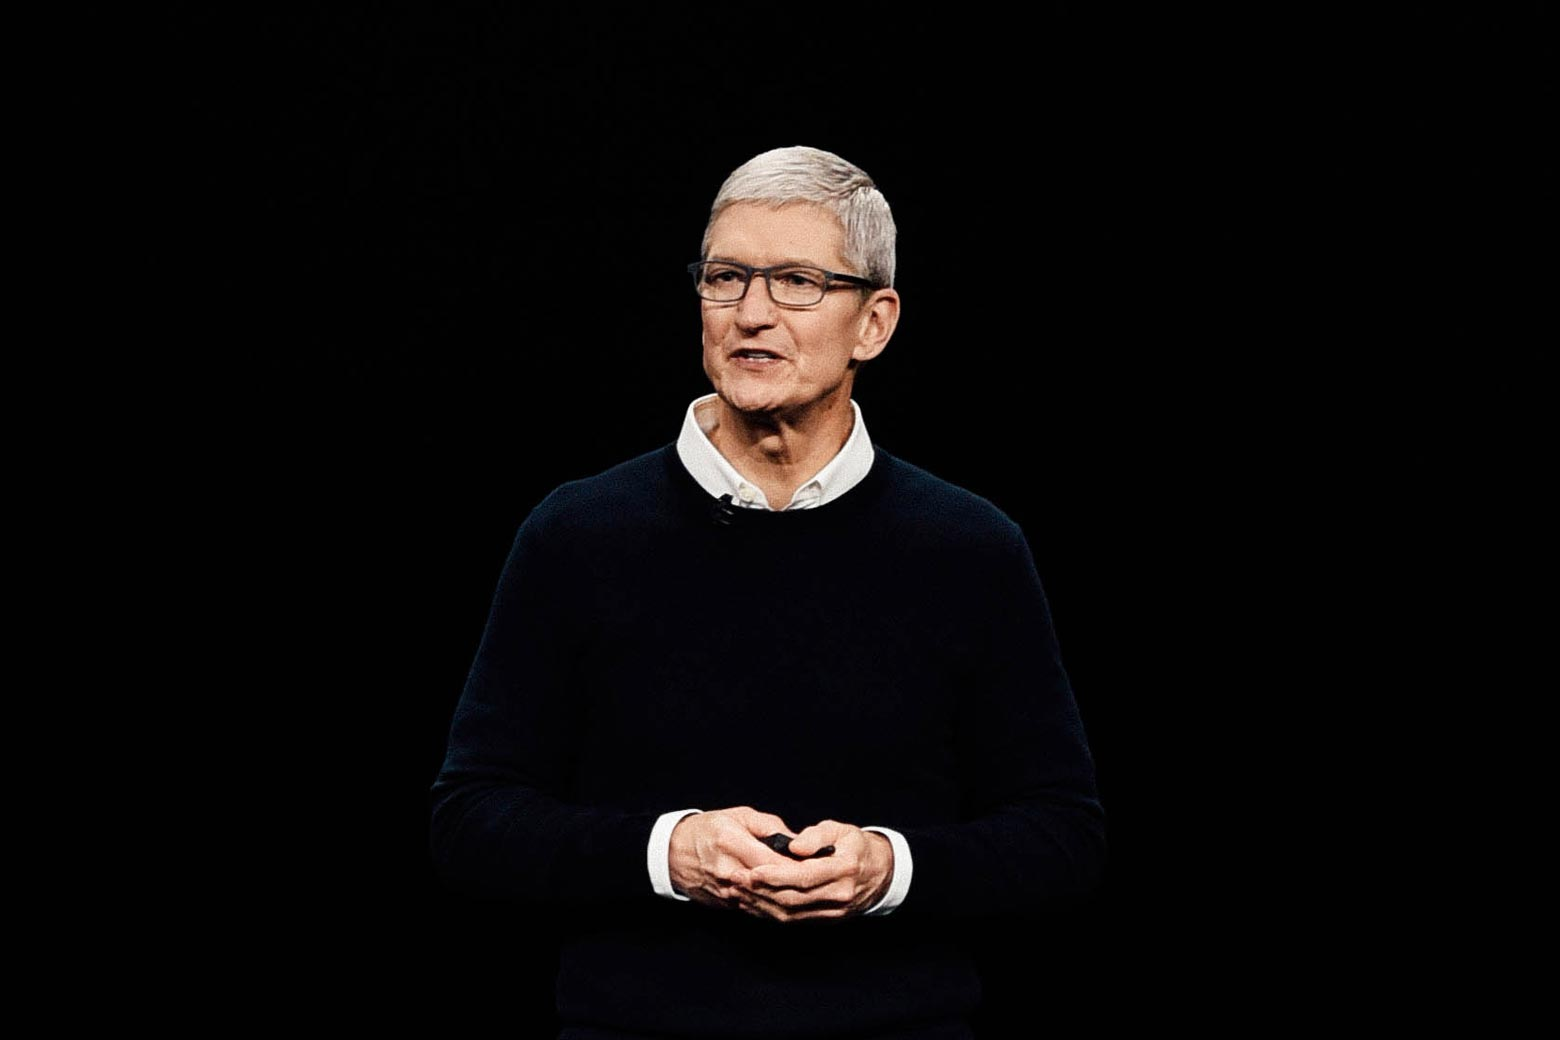 Apple Inc. CEO Tim Cook speaks during a company product launch event on Monday in Cupertino, California.